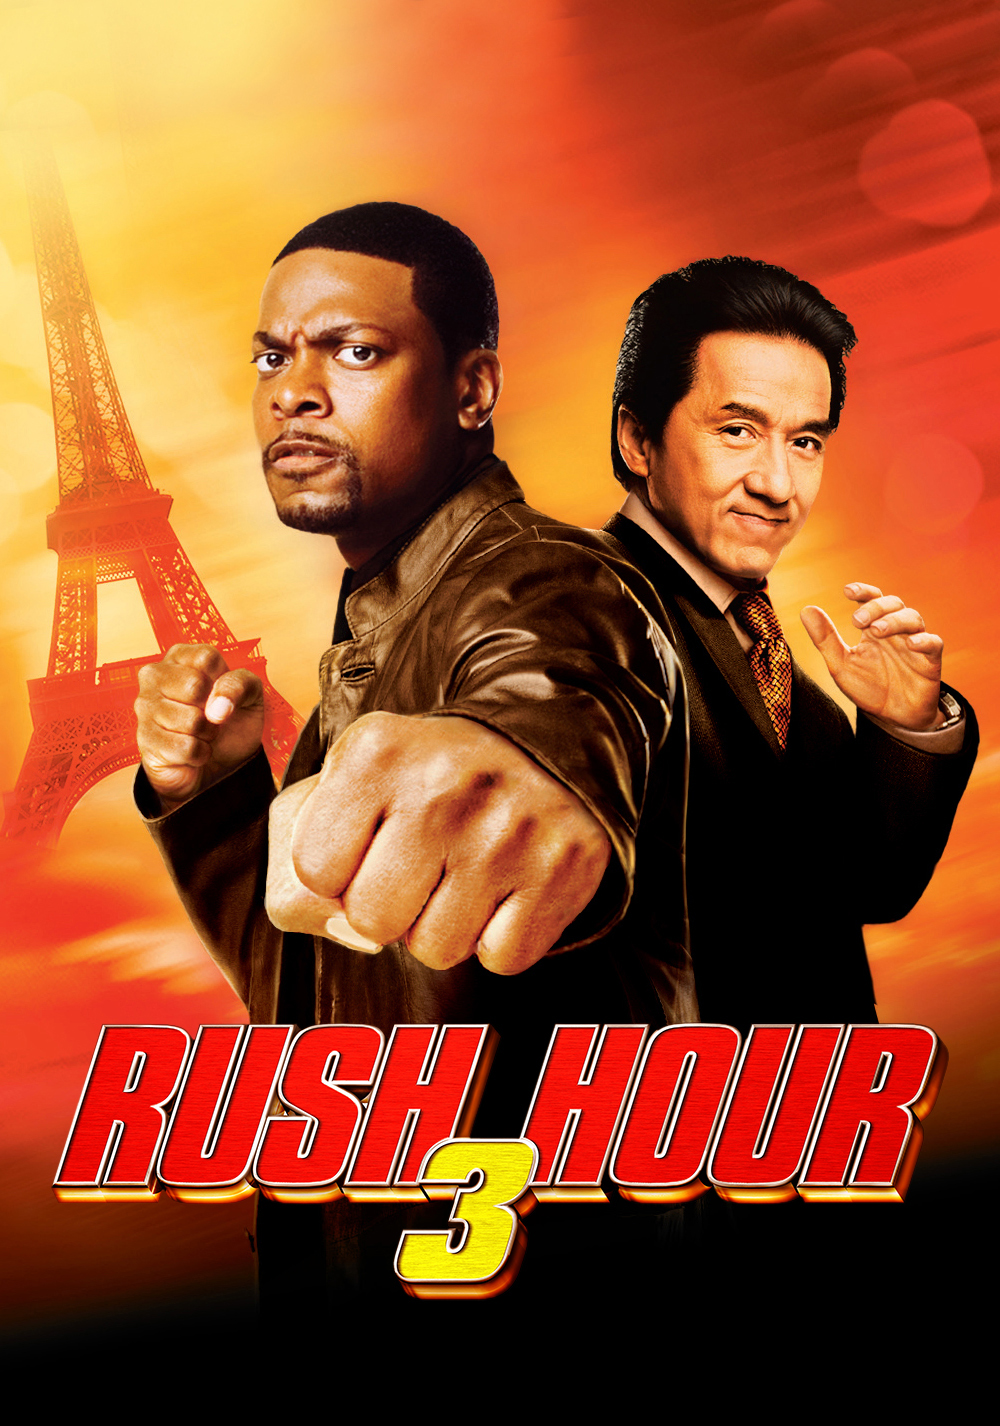 Y u no make rush hour 4 by thenewviper meme center.